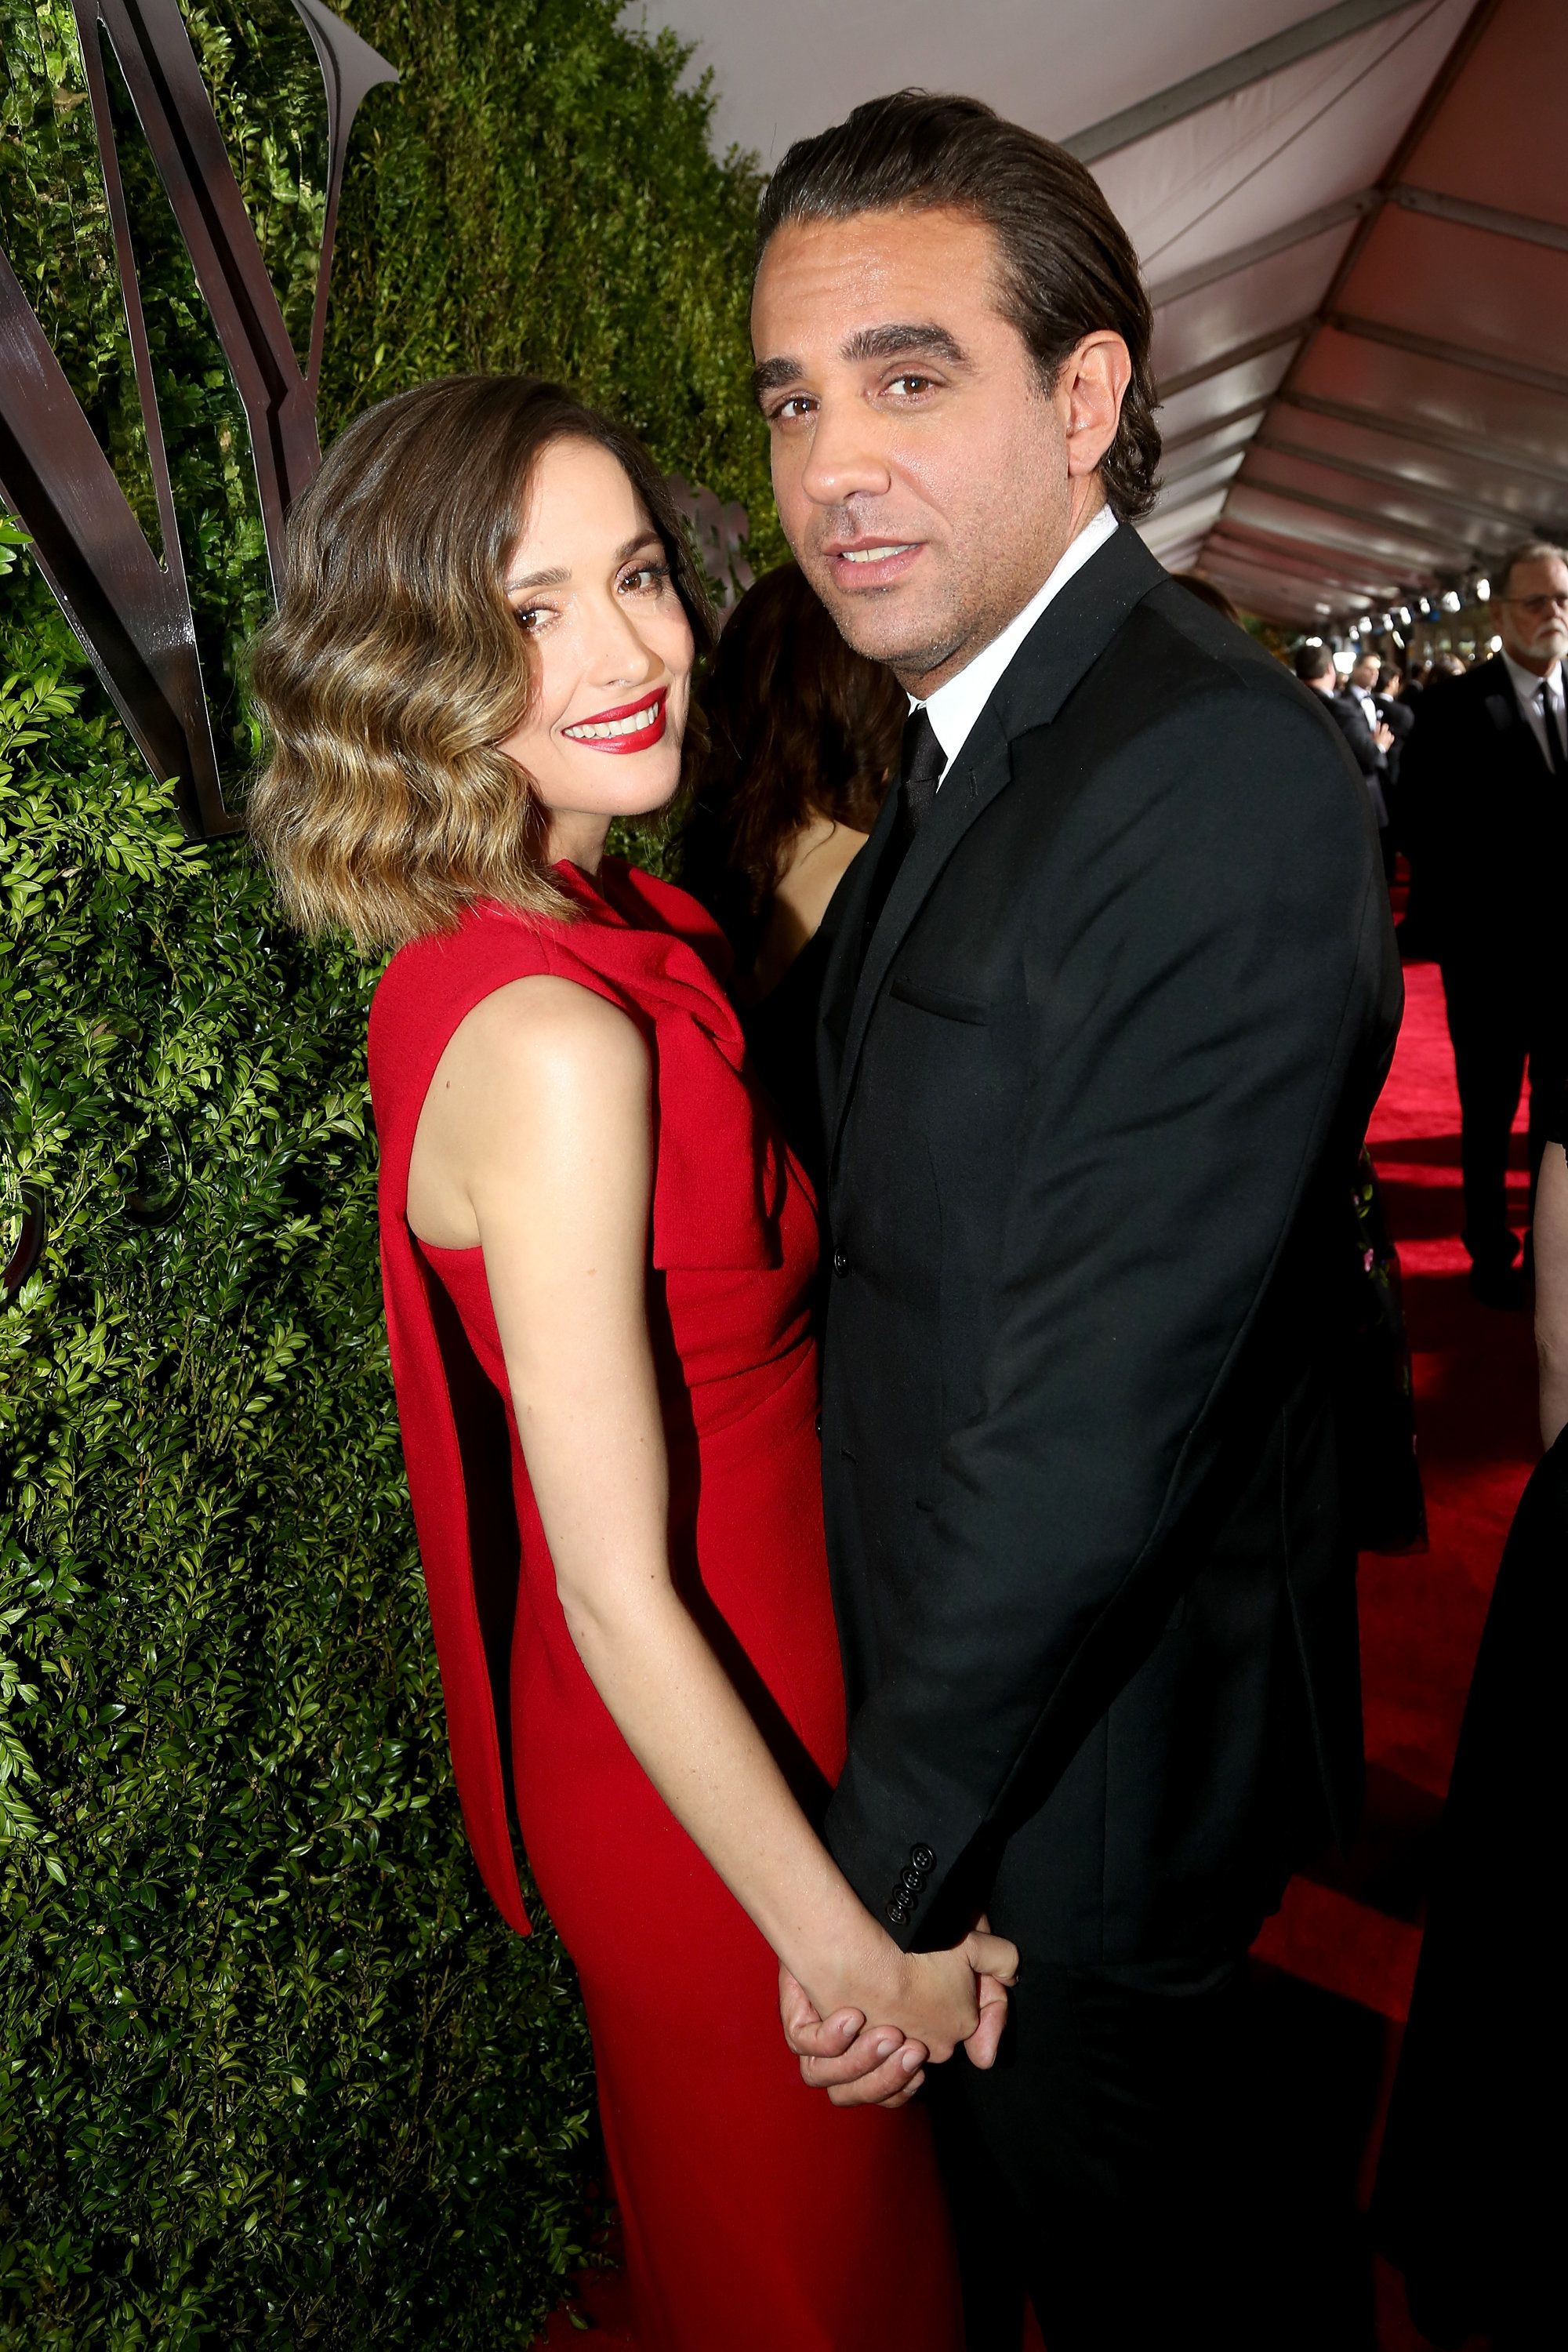 Bobby Cannavale and Rose Byrne welcomed a son last week.